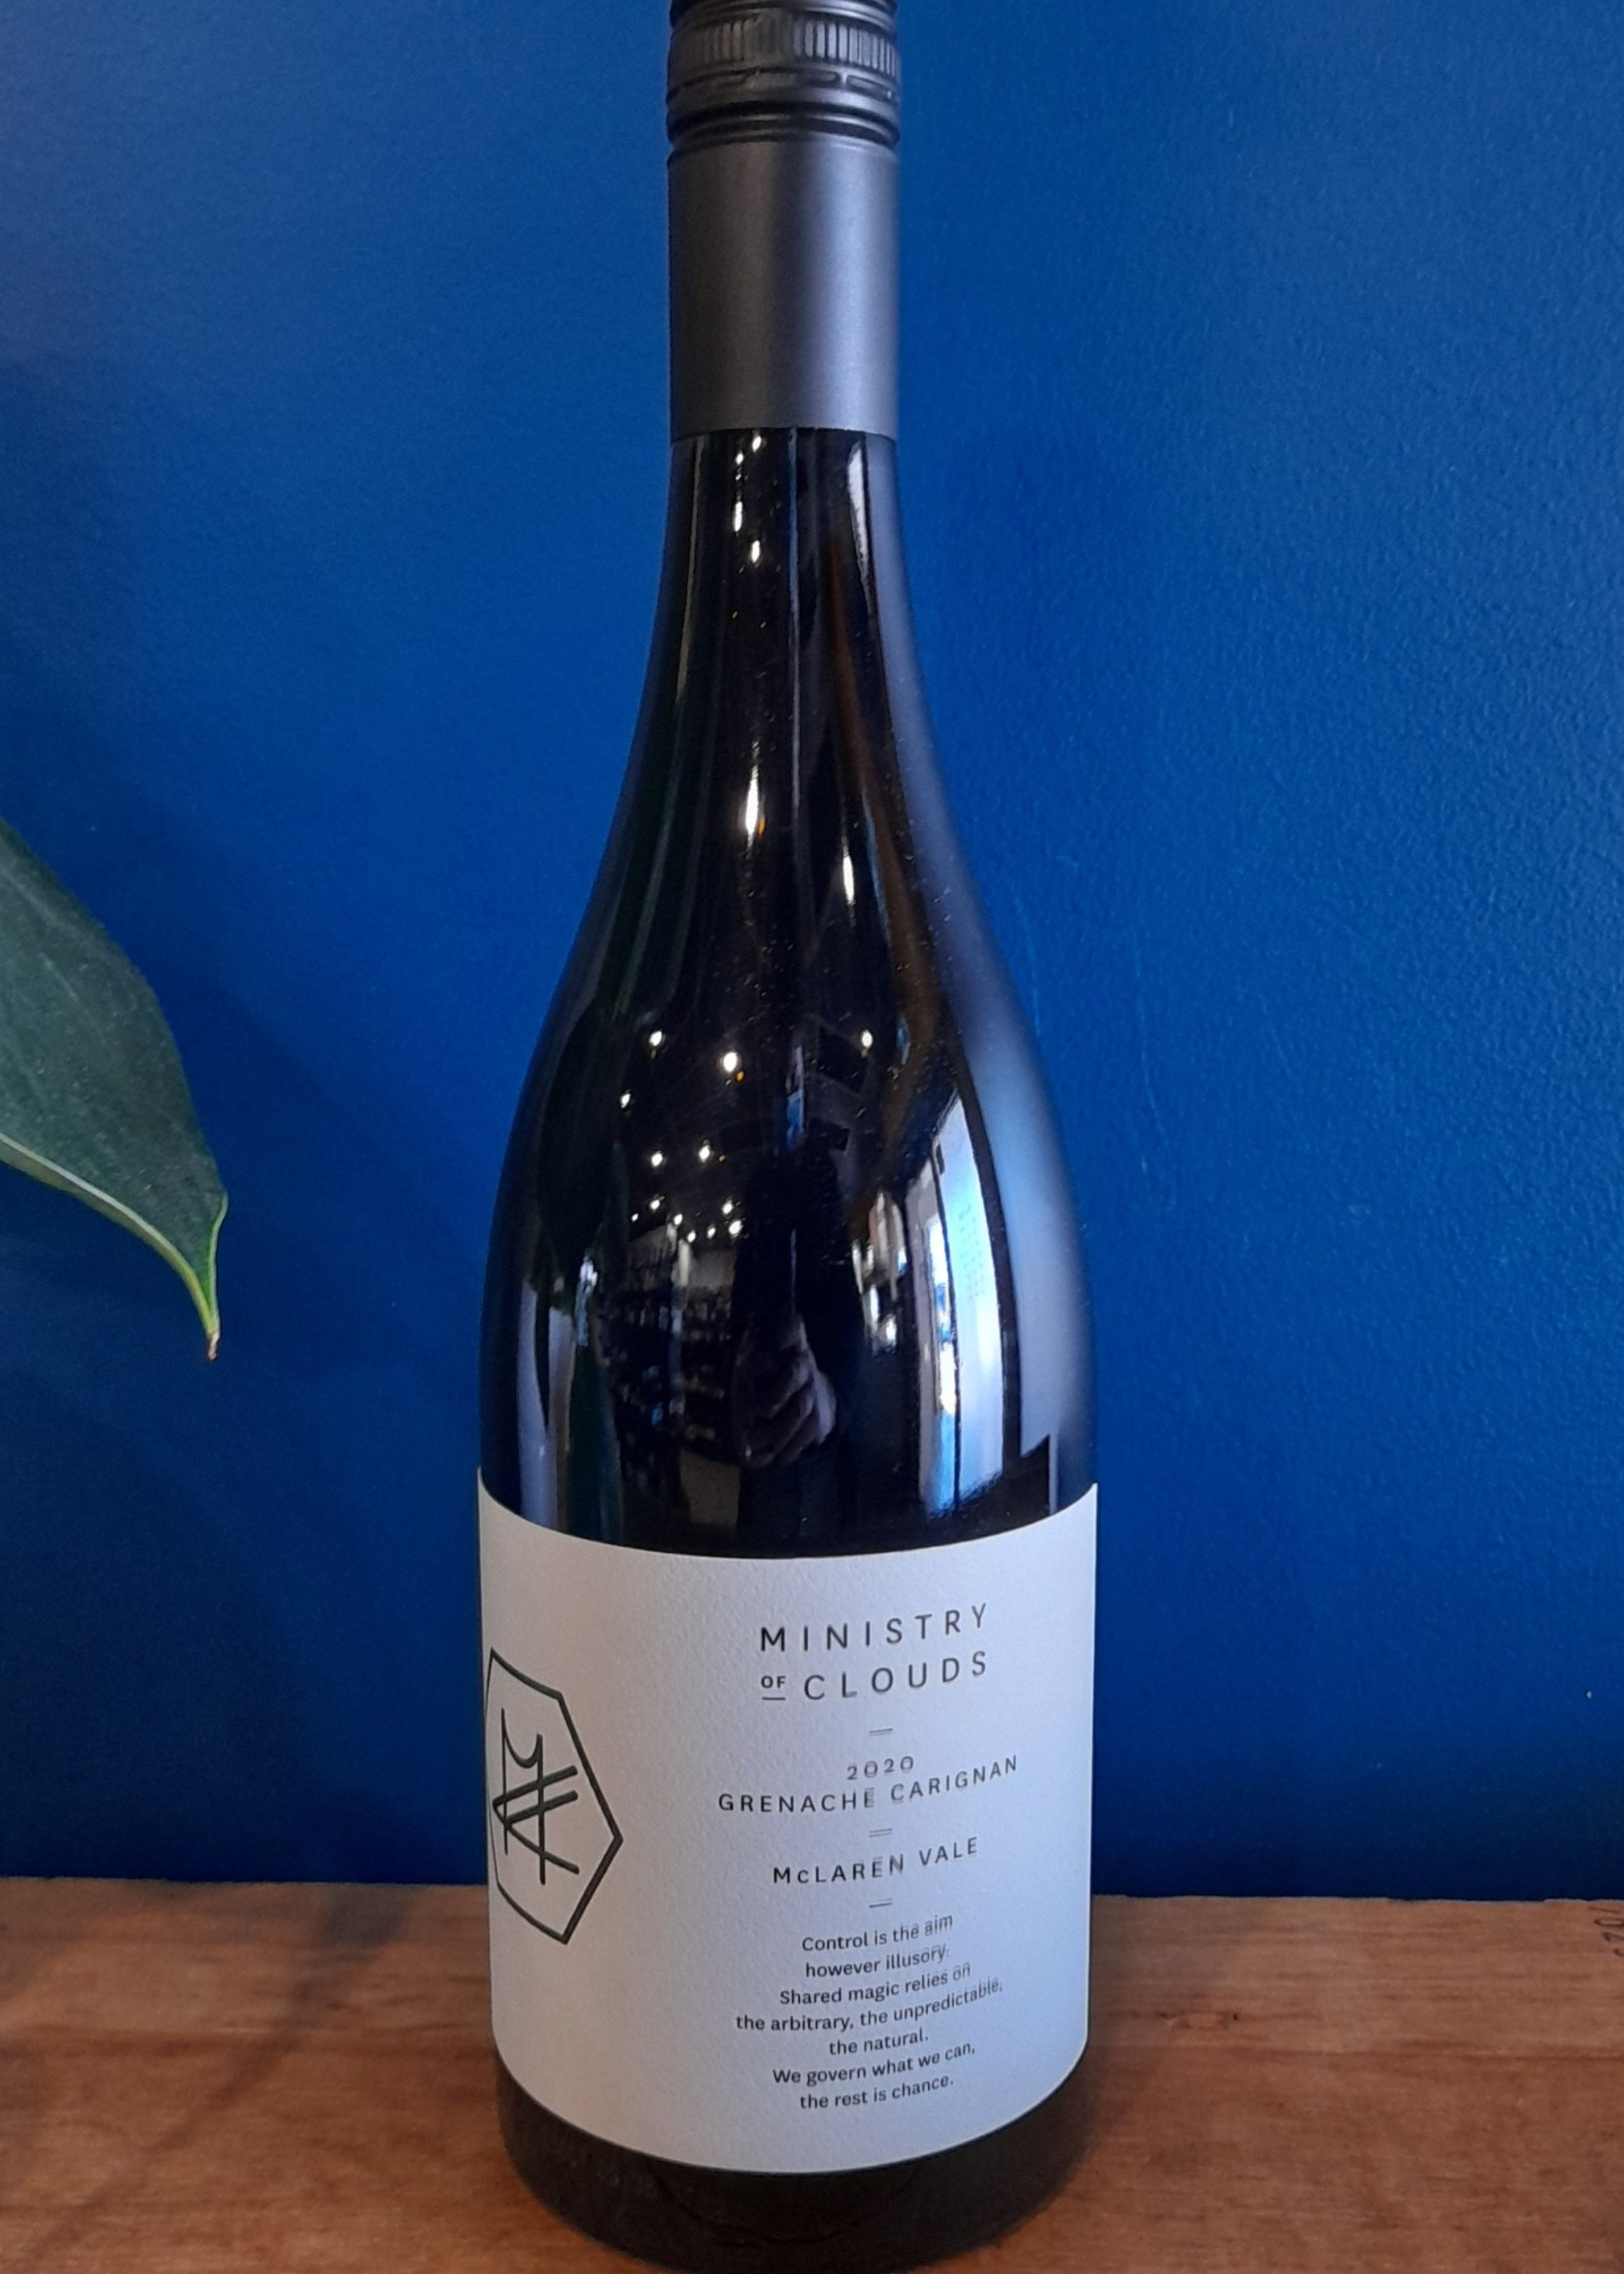 Ministry Of Clouds Ministry of Clouds 2020 Grenache Carignan